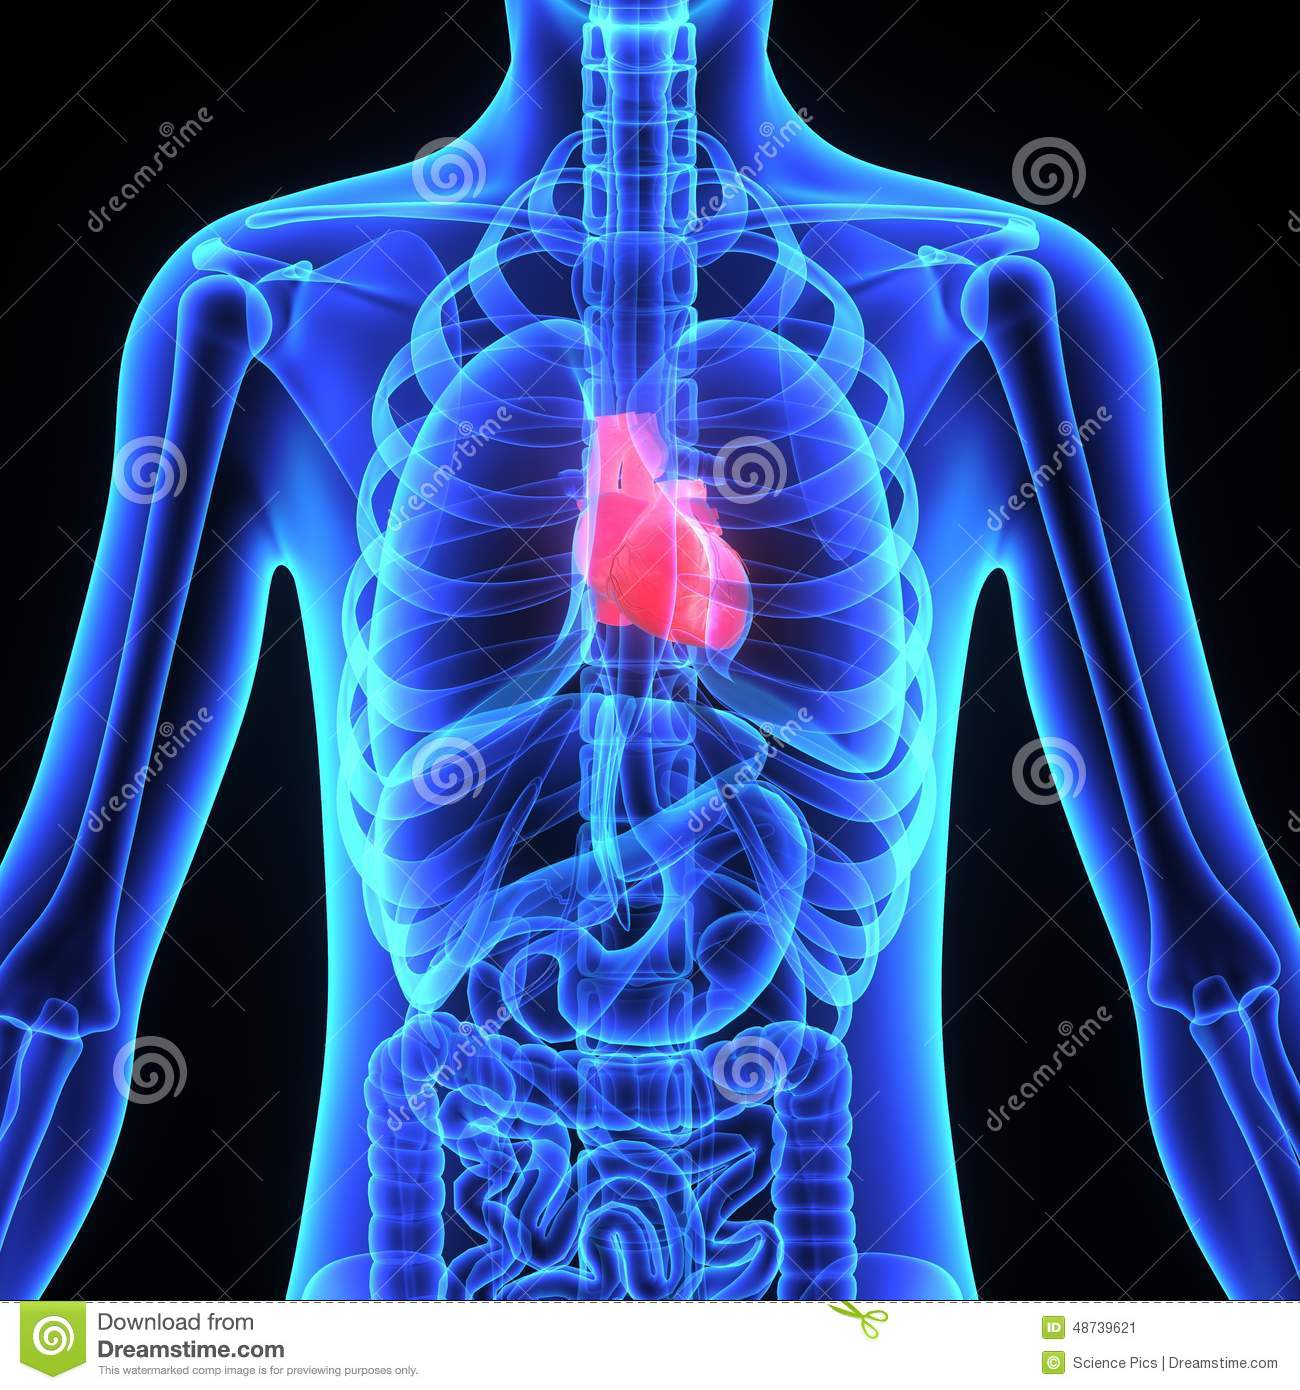 hight resolution of the human heart is a vital organ that functions as a pump providing a continuous circulation of blood through the body by way of the cardiac cycles